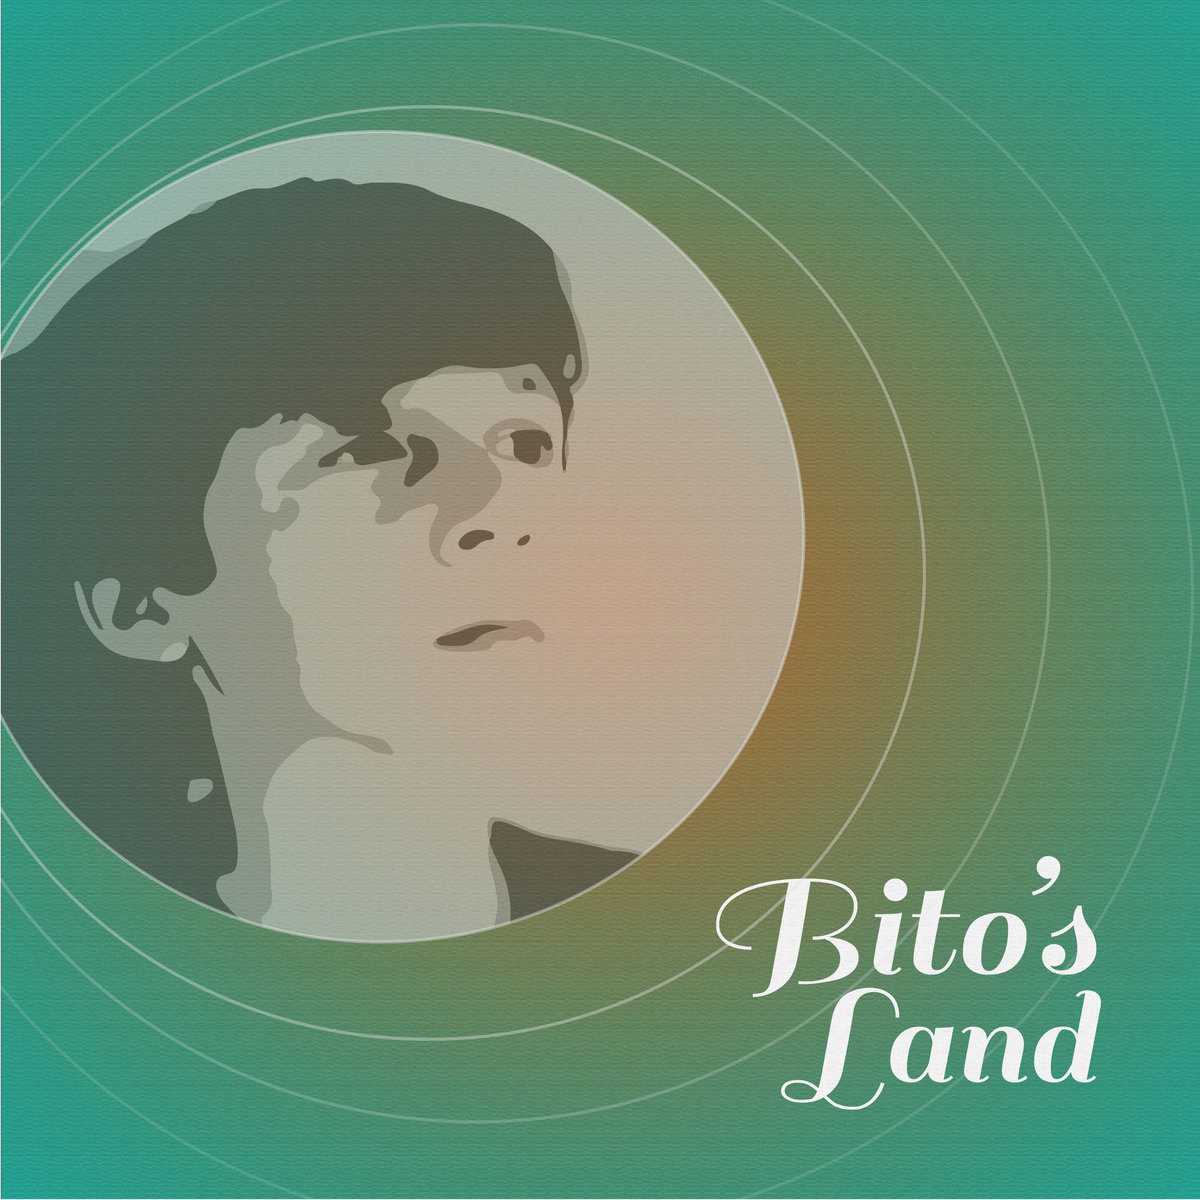 Bito's Land by David Martinez